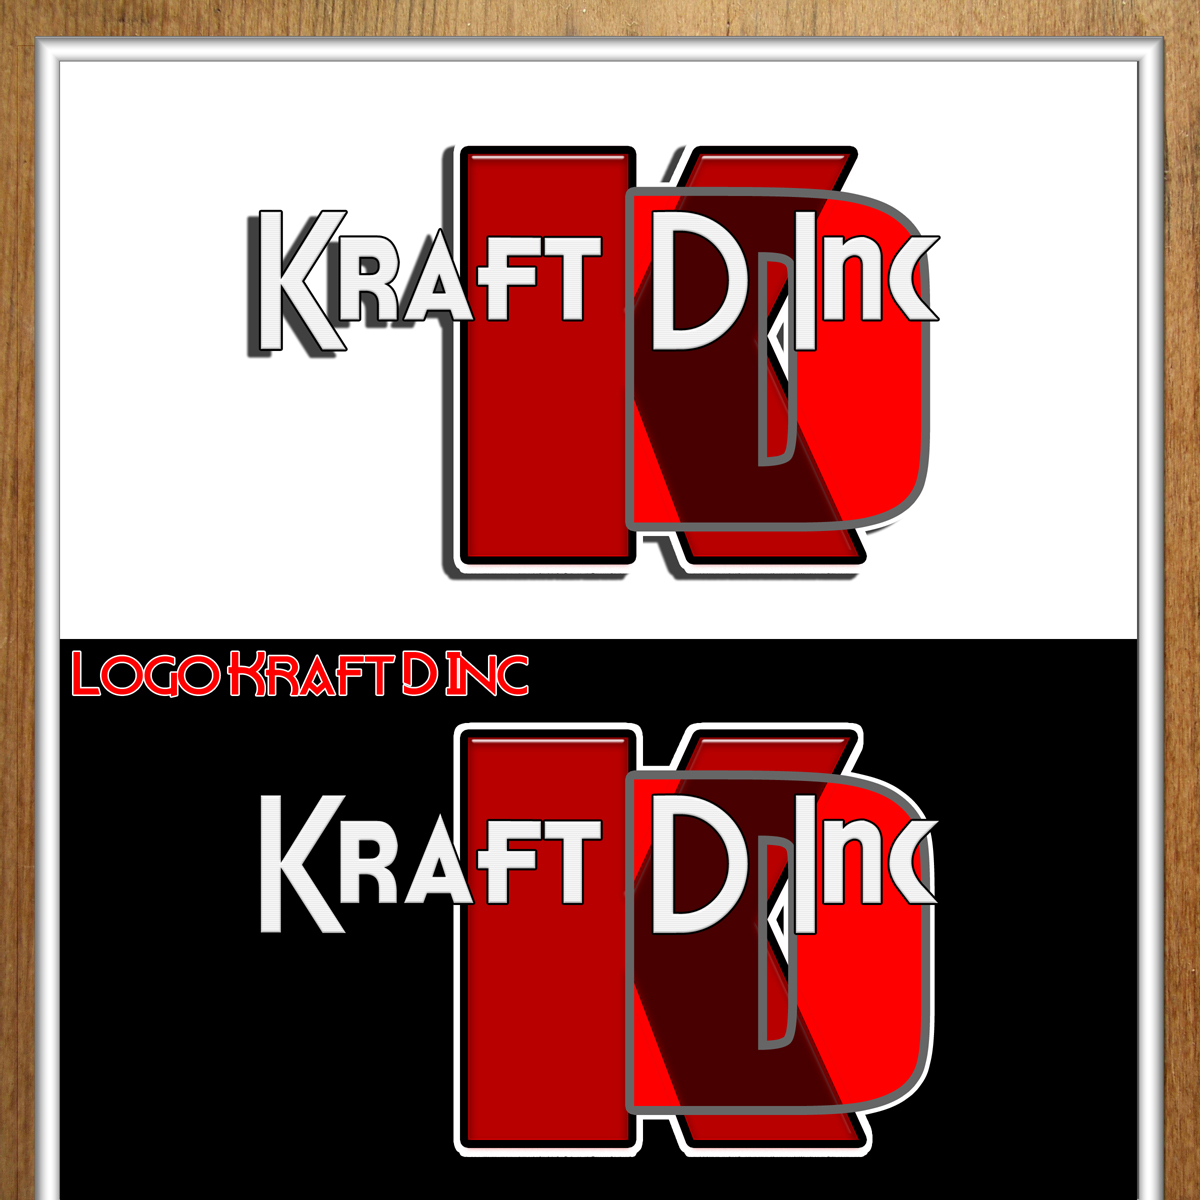 Logo Design by MITUCA ANDREI - Entry No. 248 in the Logo Design Contest Unique Logo Design Wanted for Kraft D Inc.